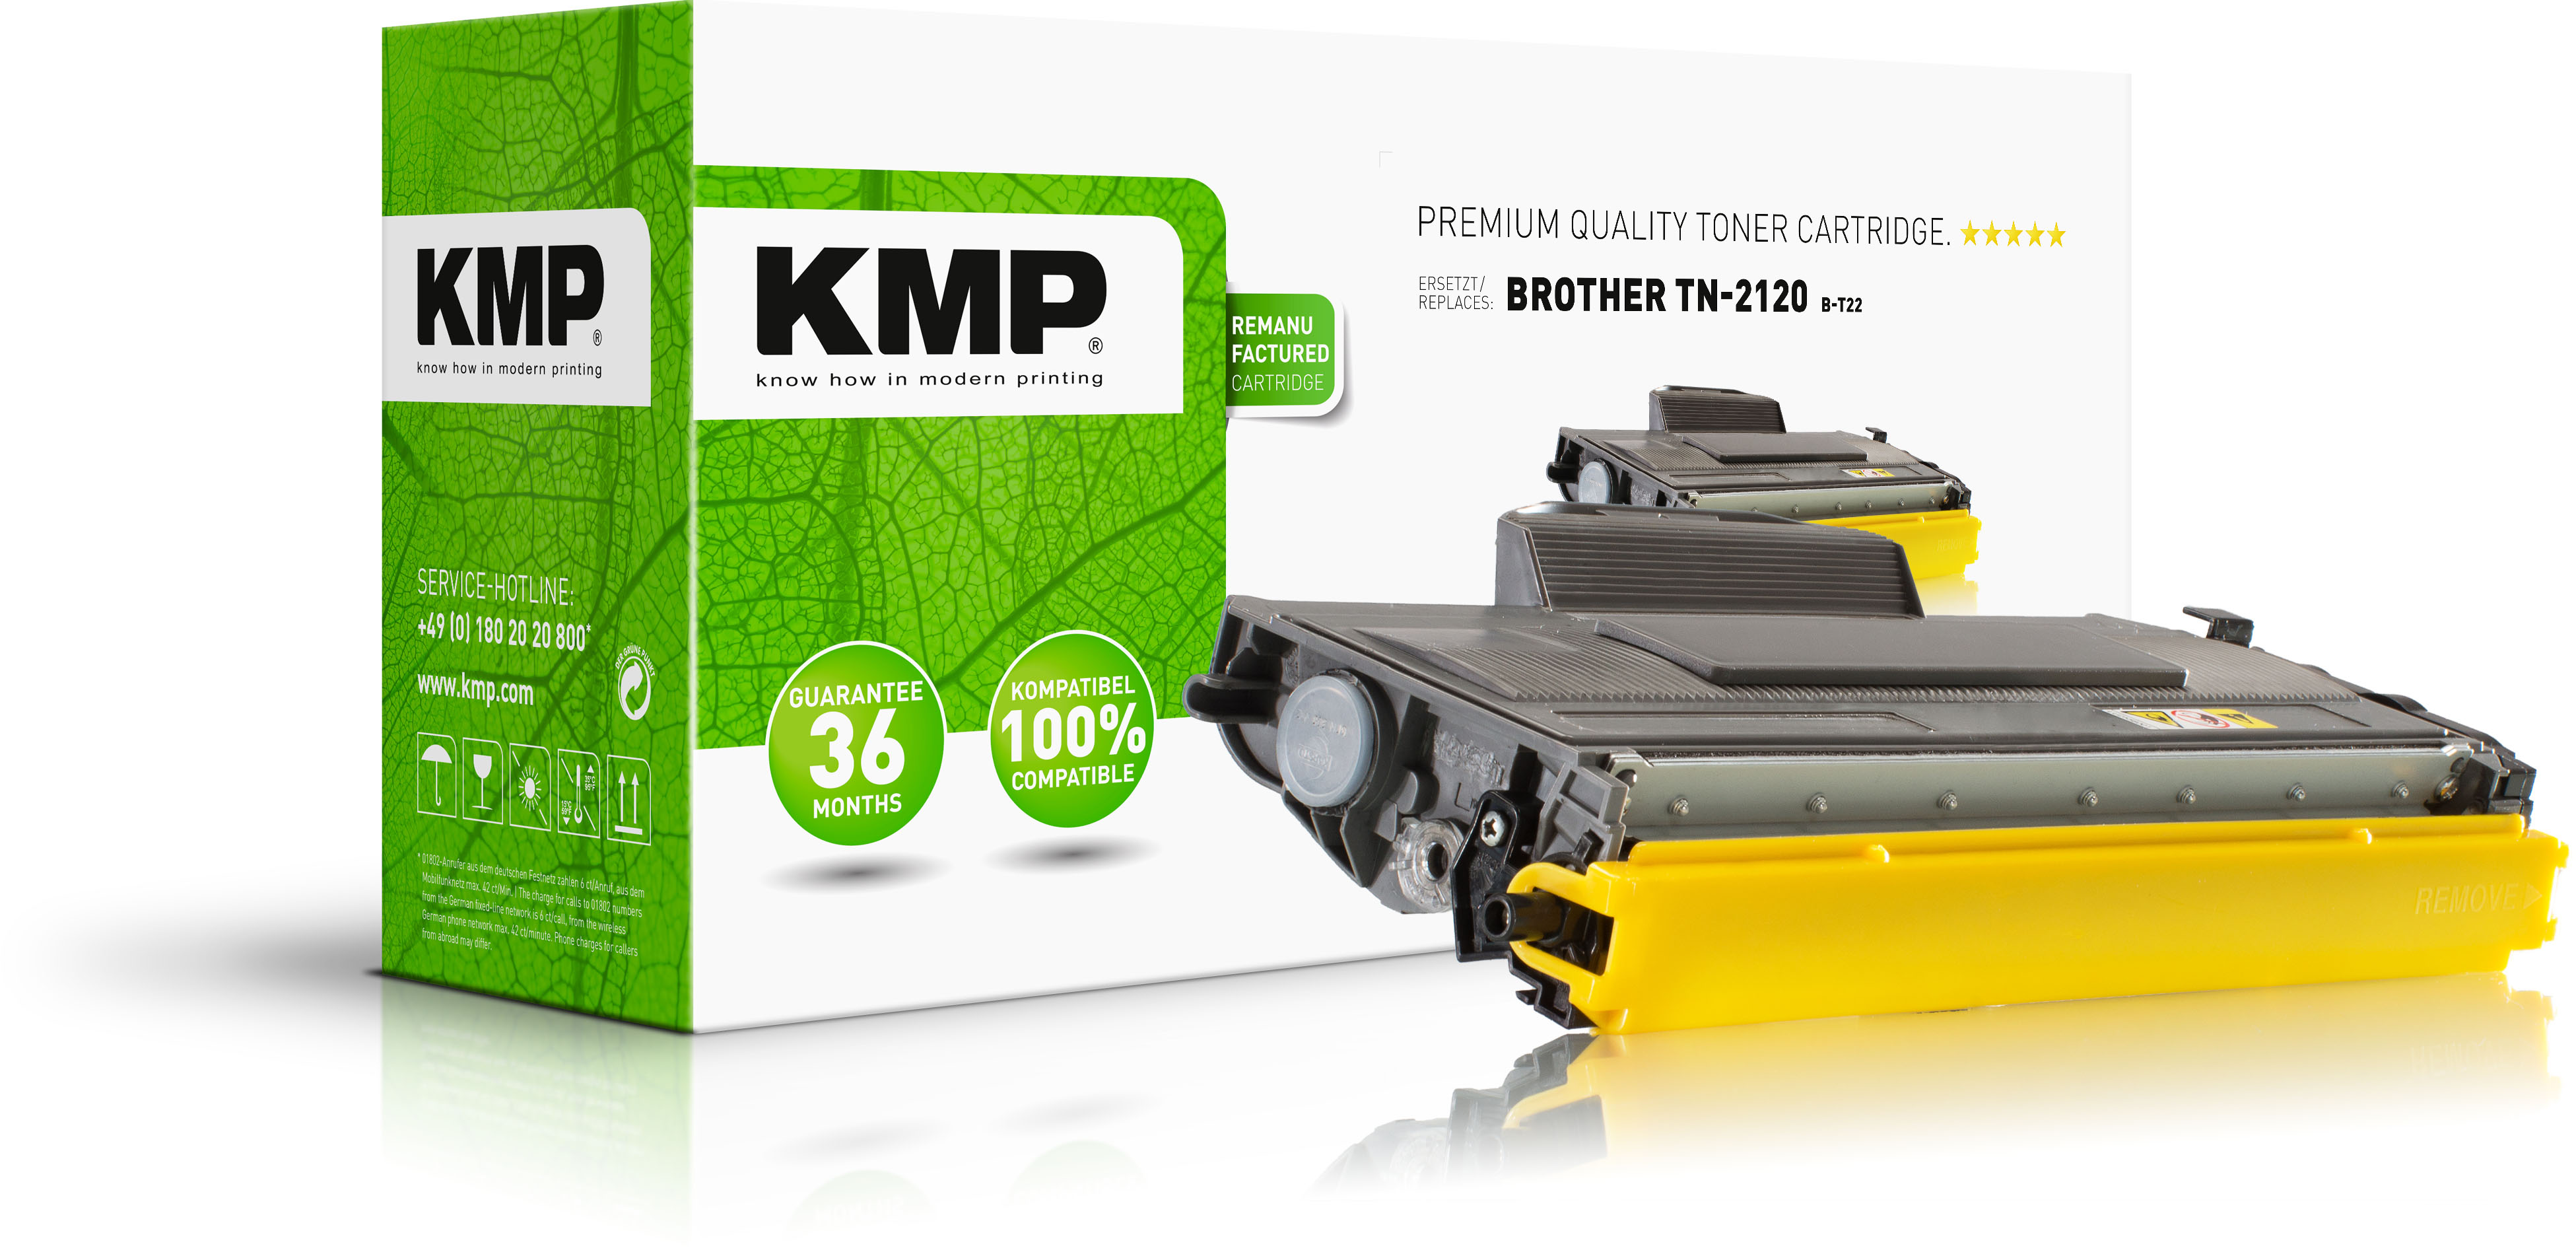 KMP Toner-Kit schwarz HC plus (1253,5000, B-T22)